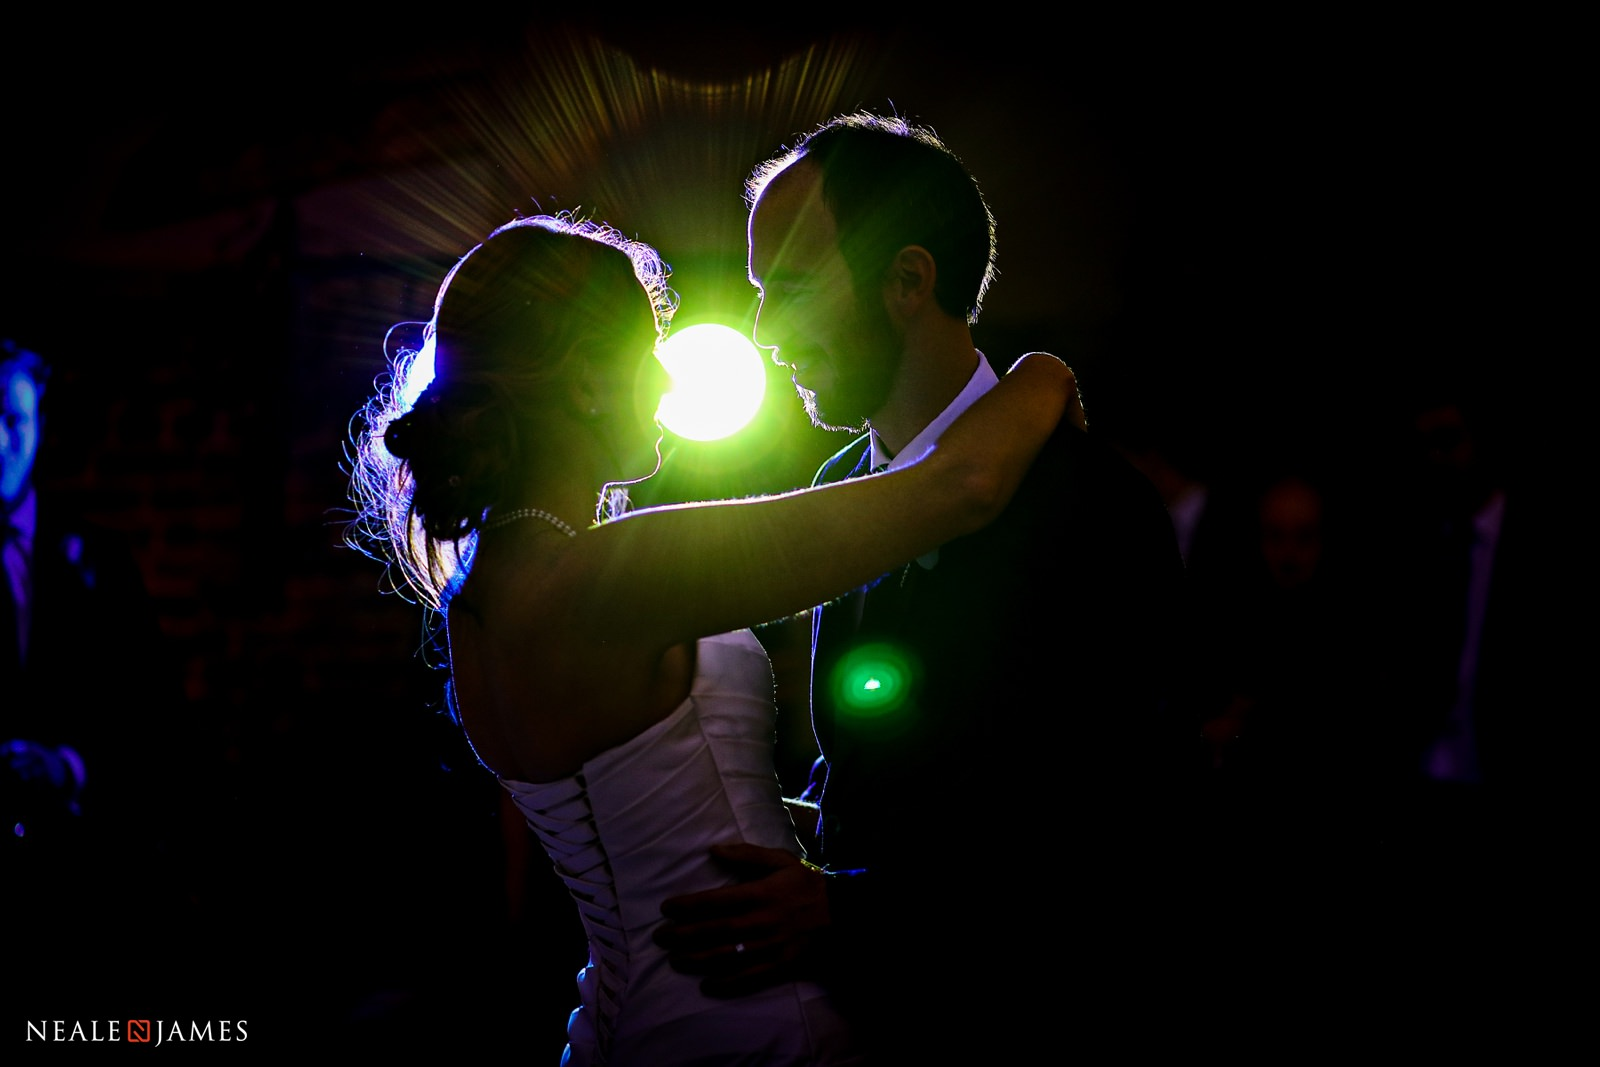 The disco provides green rim lighting for a couple enjoying their first dance at Wasing Park